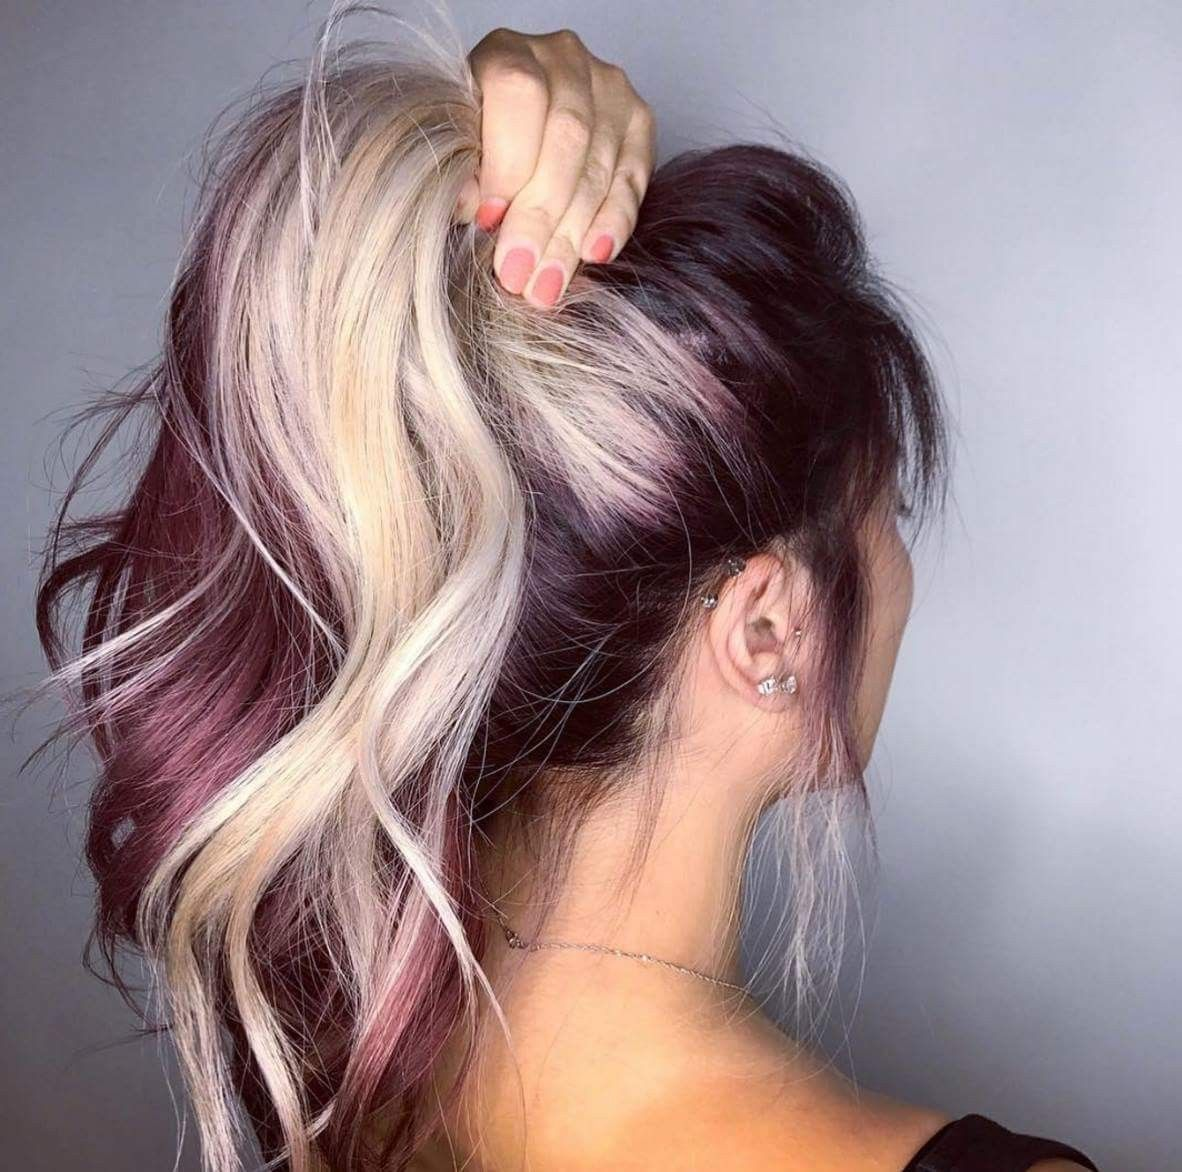 Pin by Alyssa McMahon on Hair and beauty in Pinterest Hair